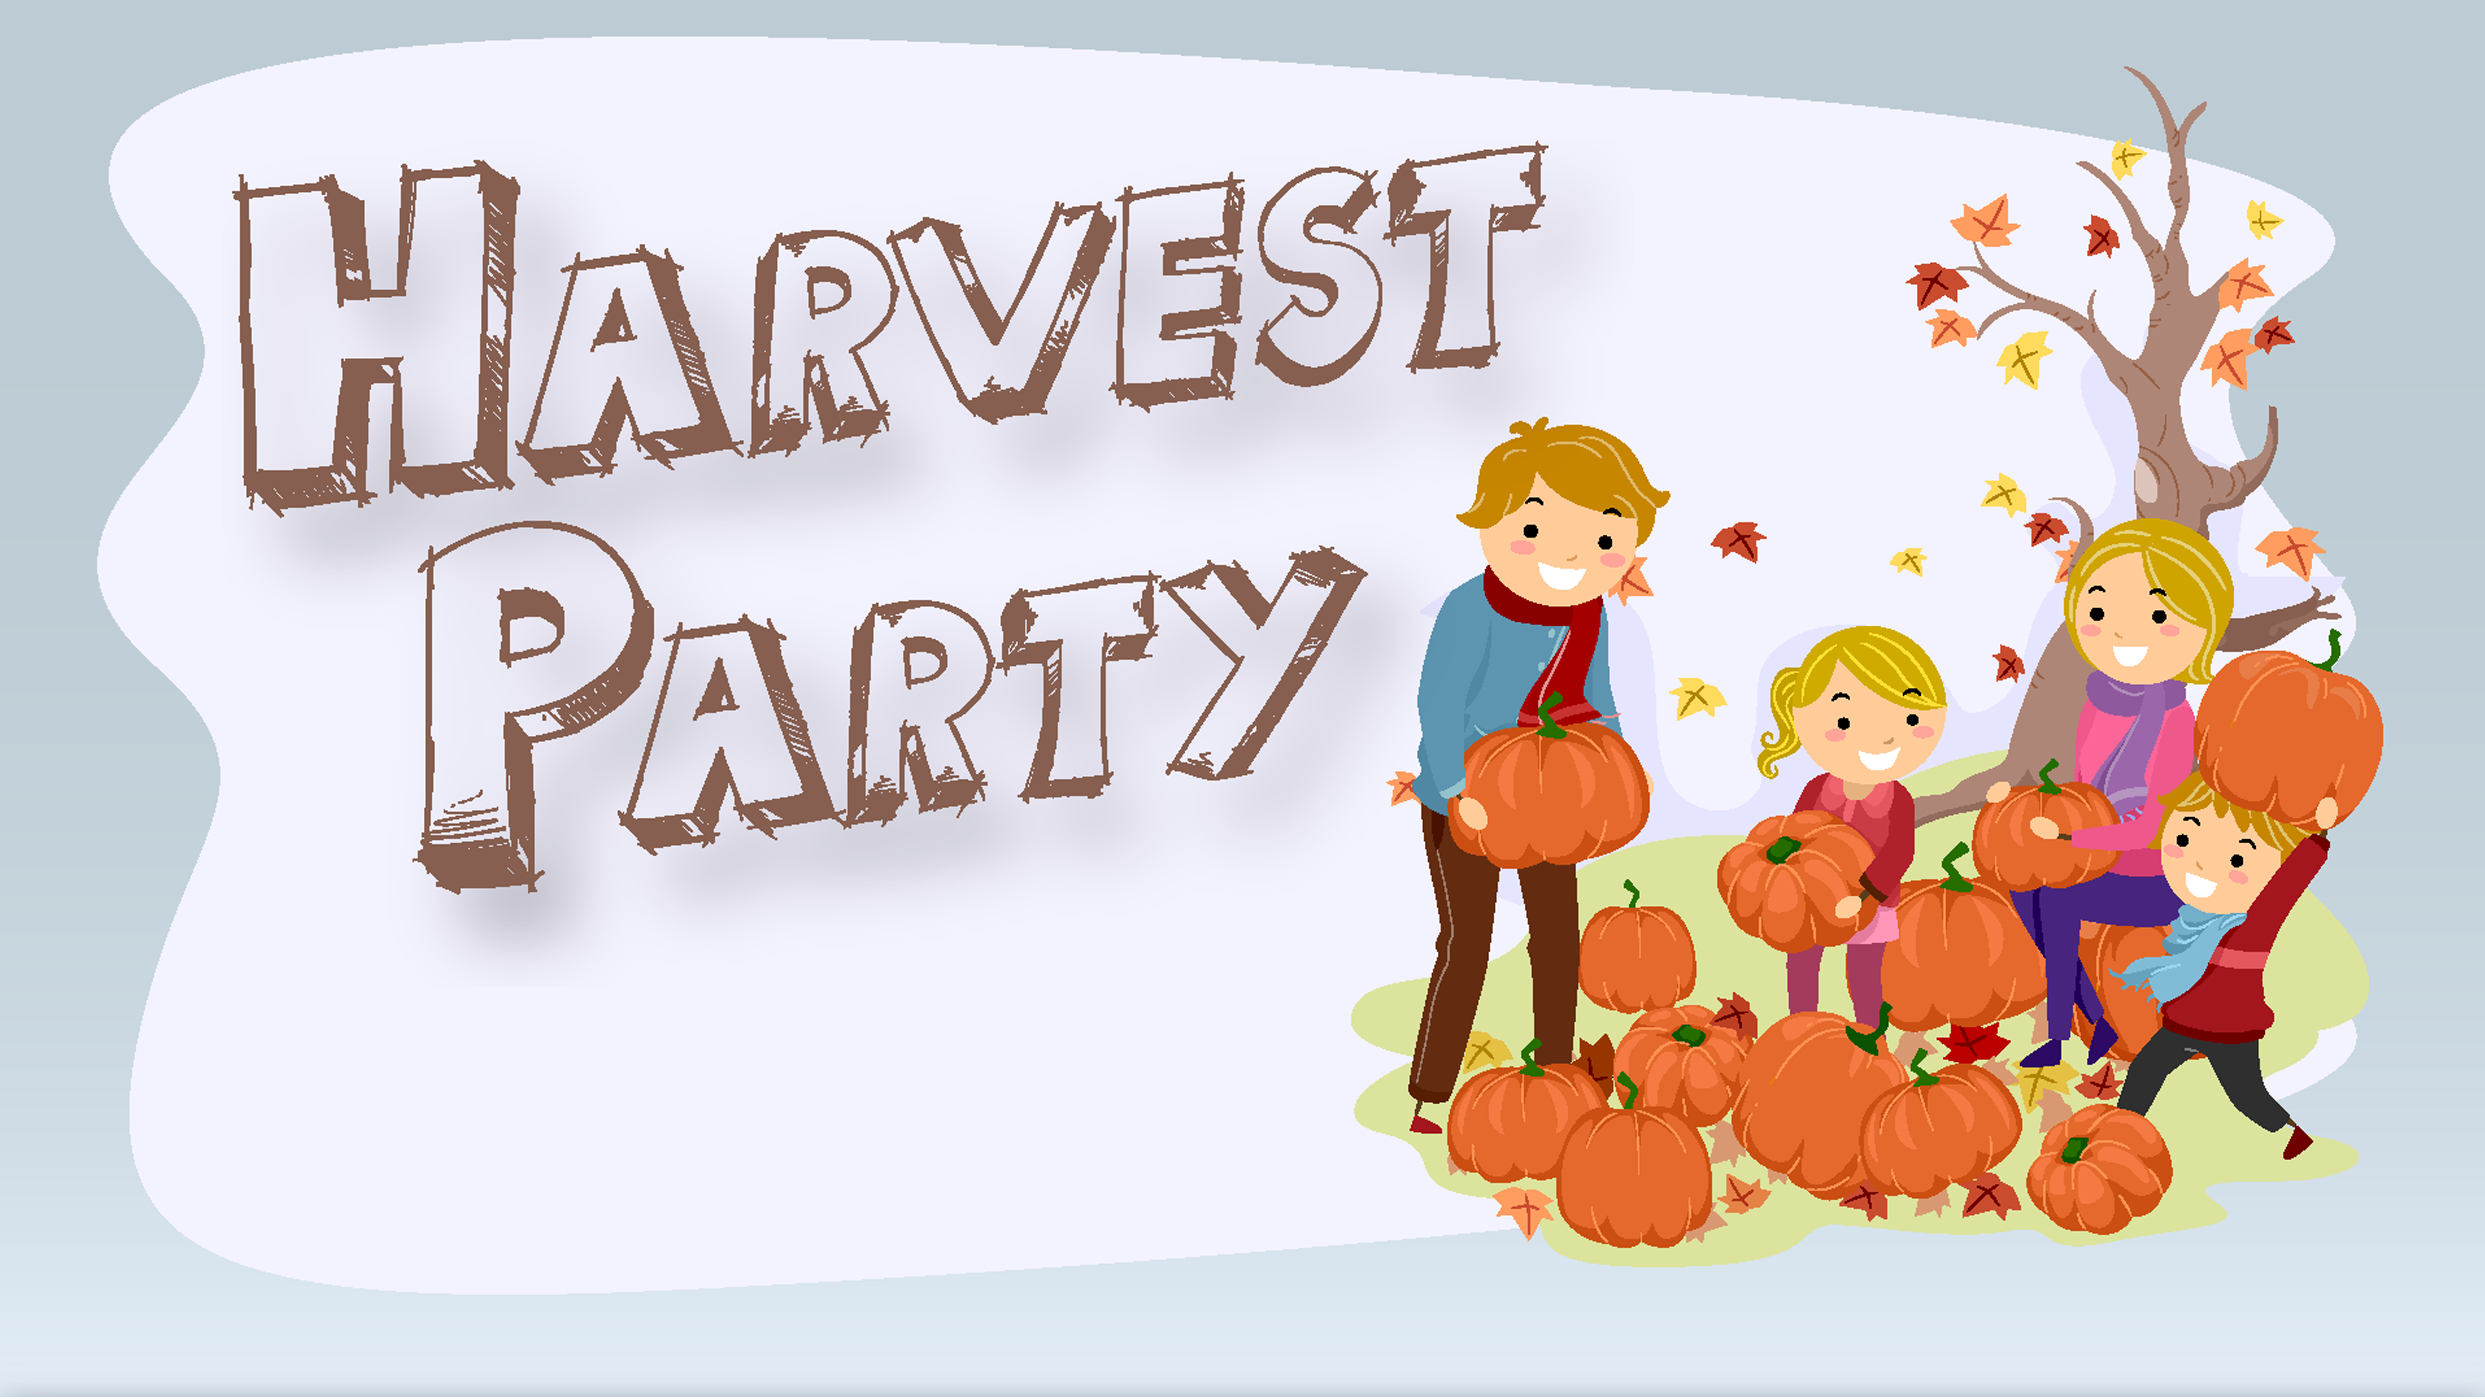 Harvest clipart church harvest. Party with boys girls